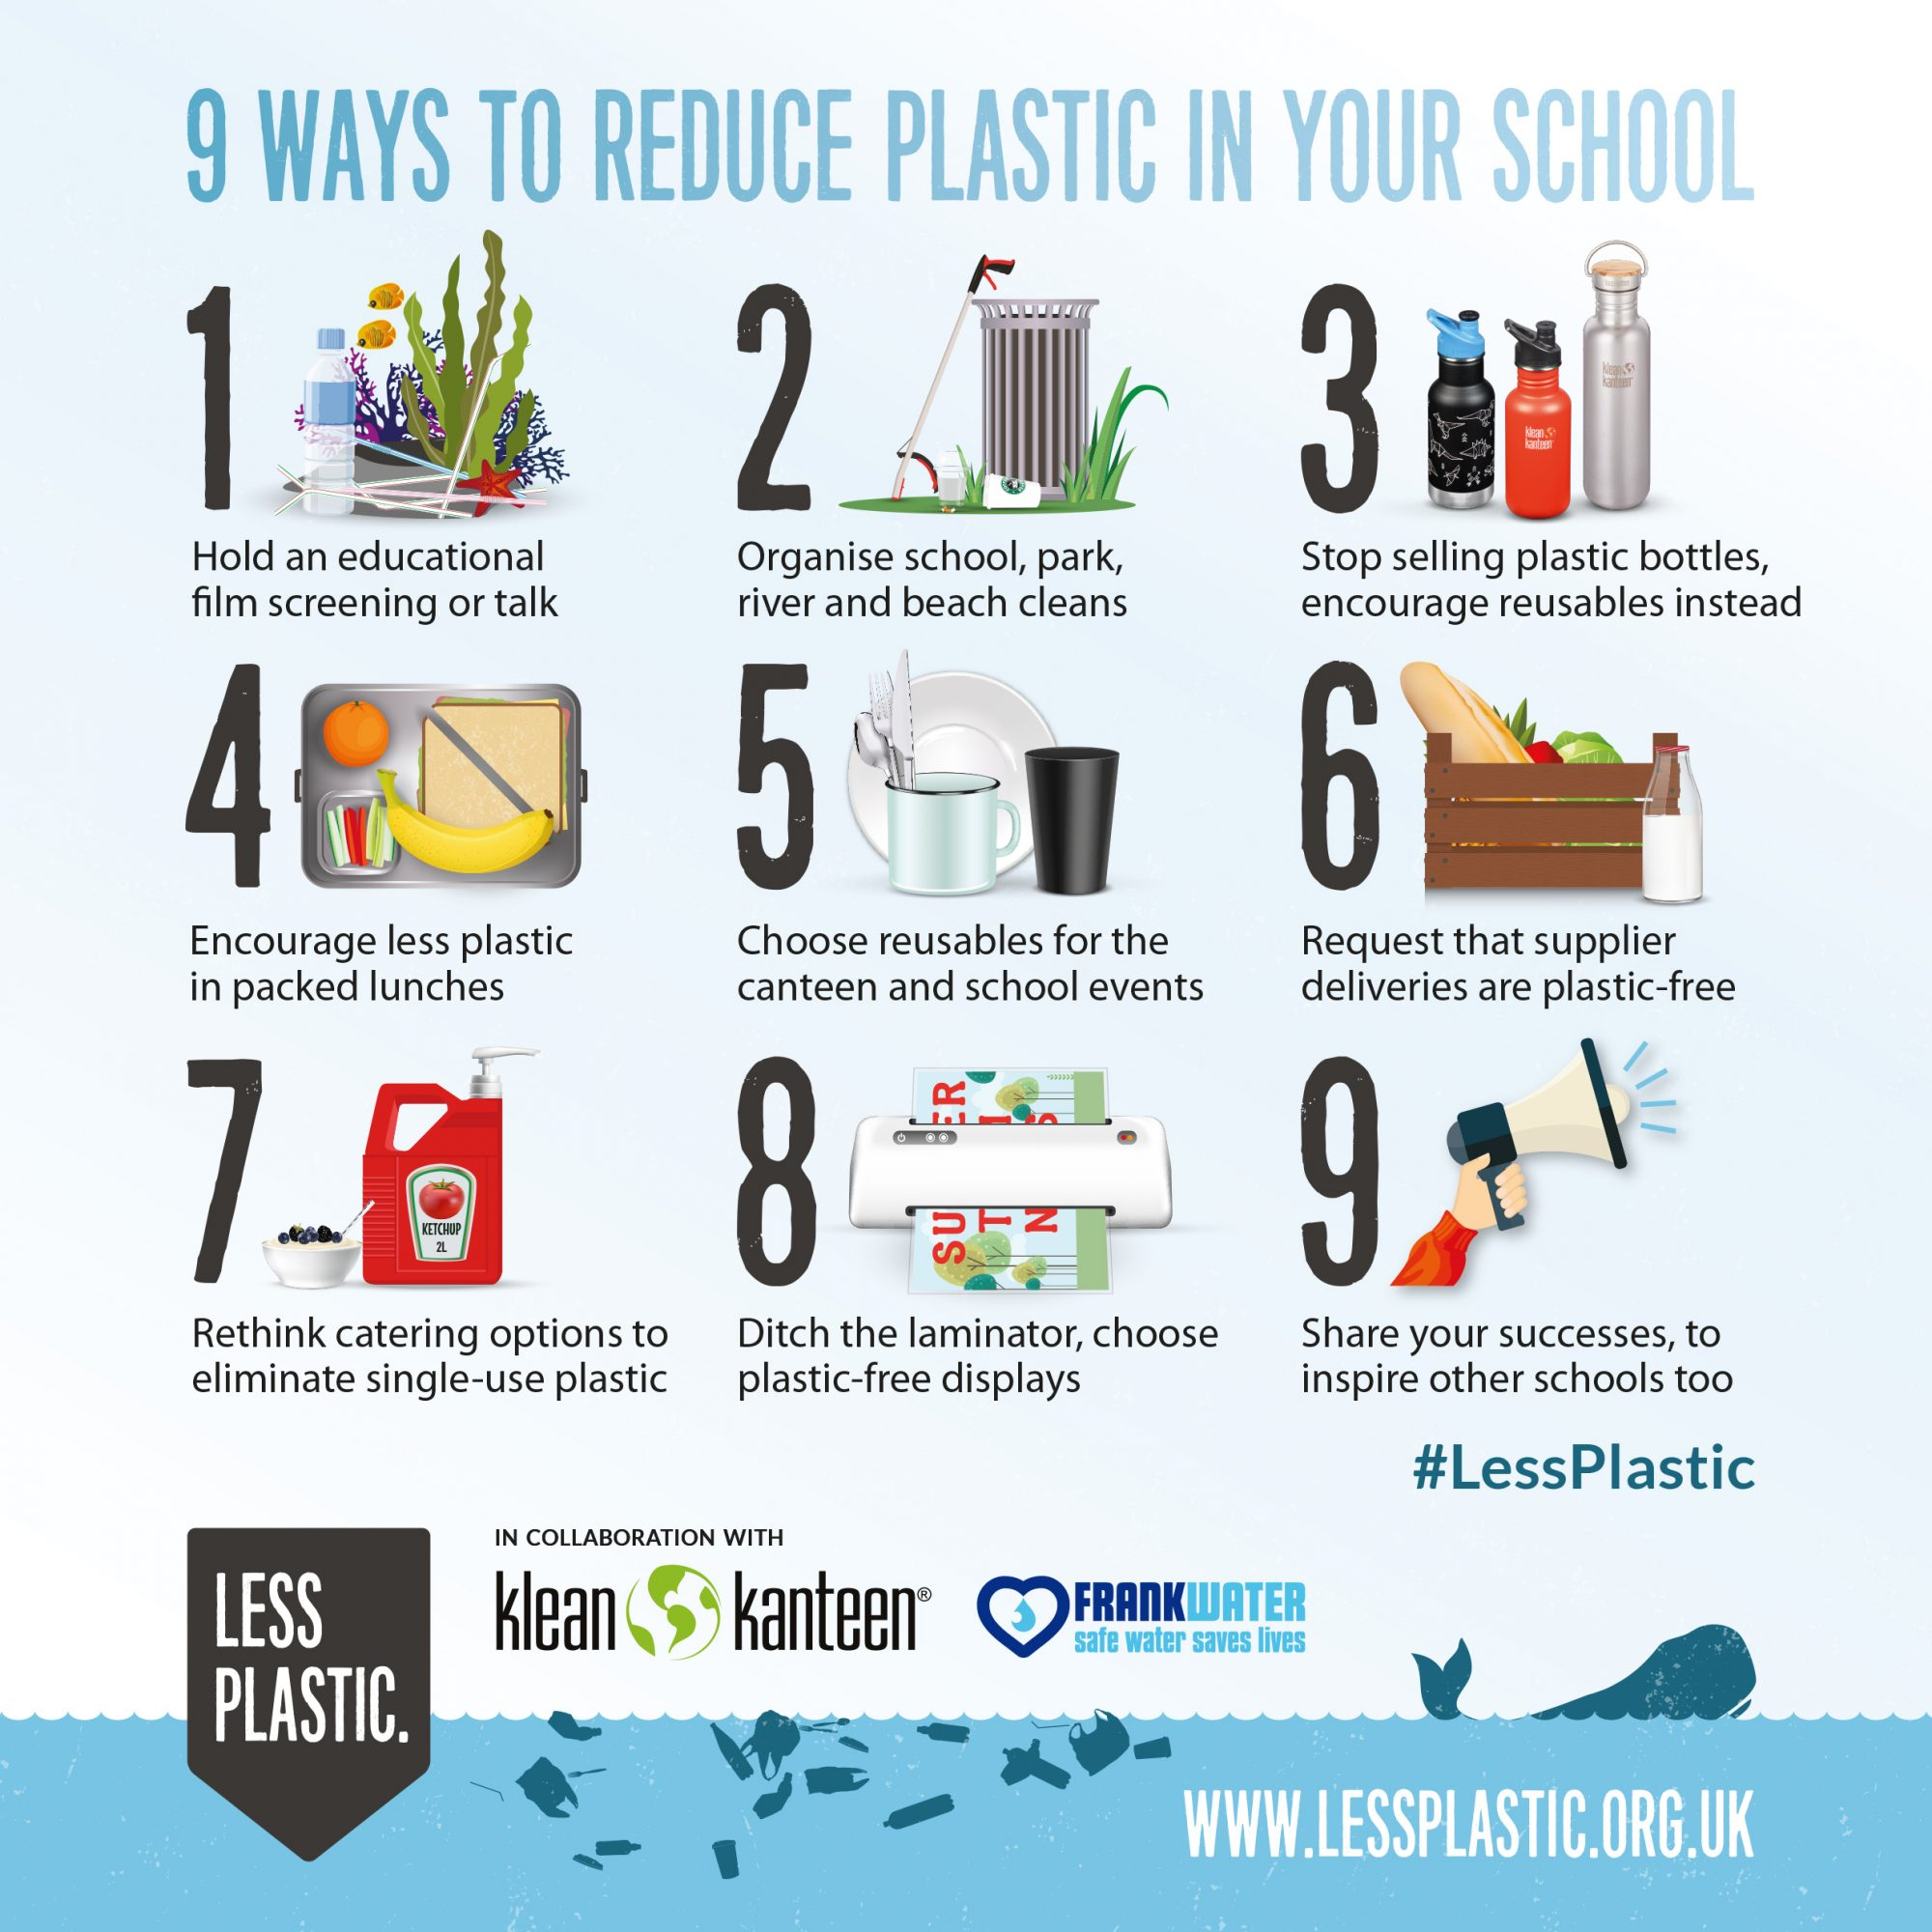 9 ways to reduce plastic in your school - Less Plastic